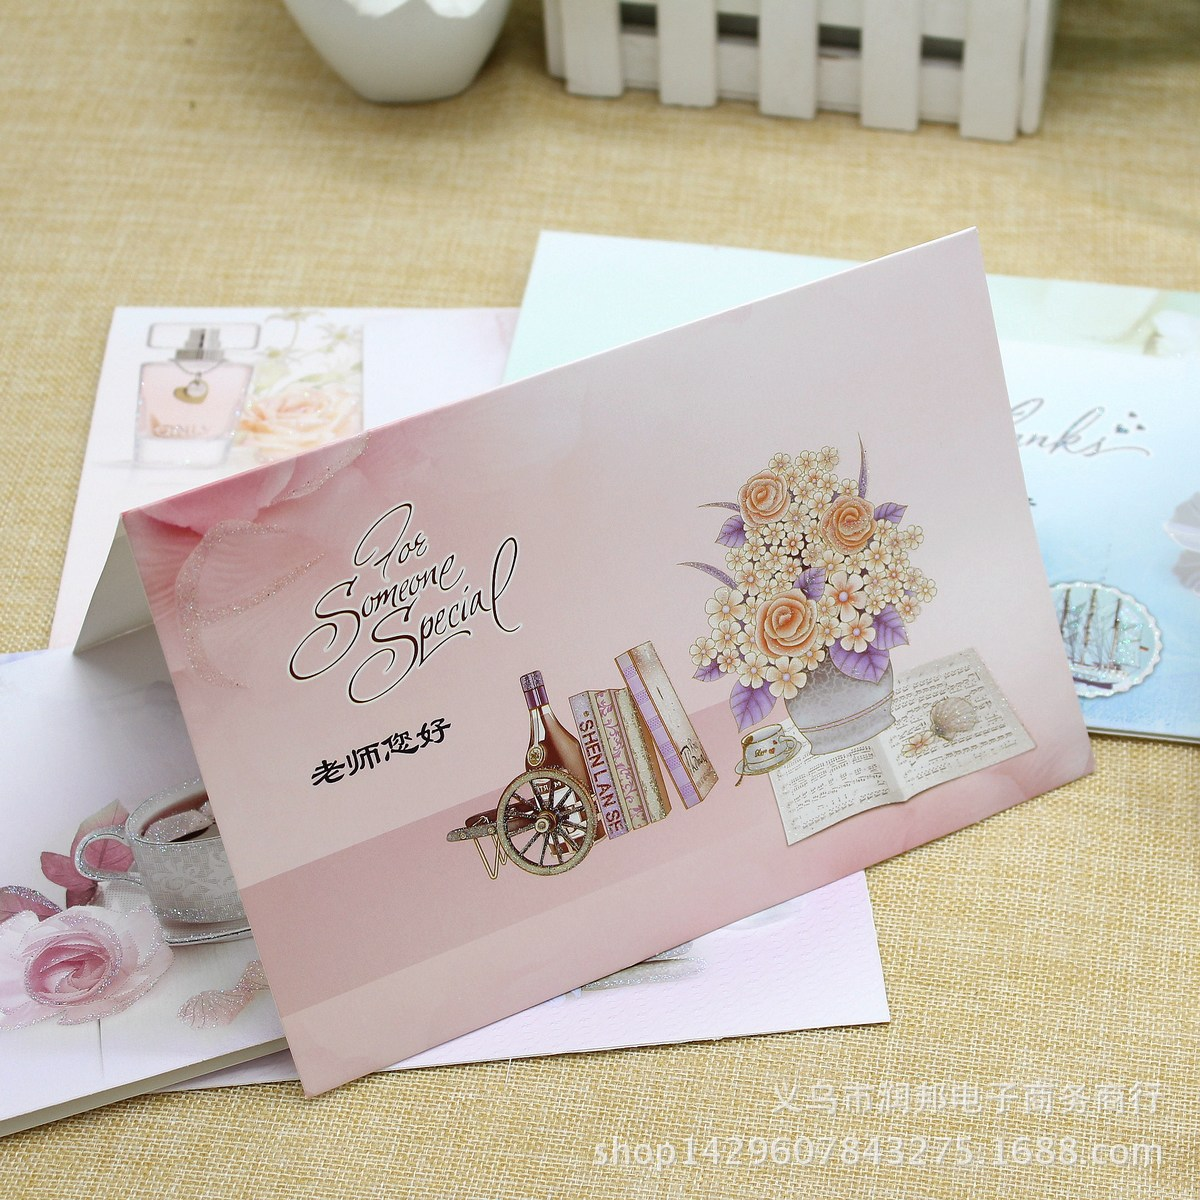 Direct selling new stereo teachers day cards wholesale lovely gift direct selling new stereo teachers day cards wholesale lovely gift card special offer south korea creative teacher china best manufacturers kristyandbryce Images